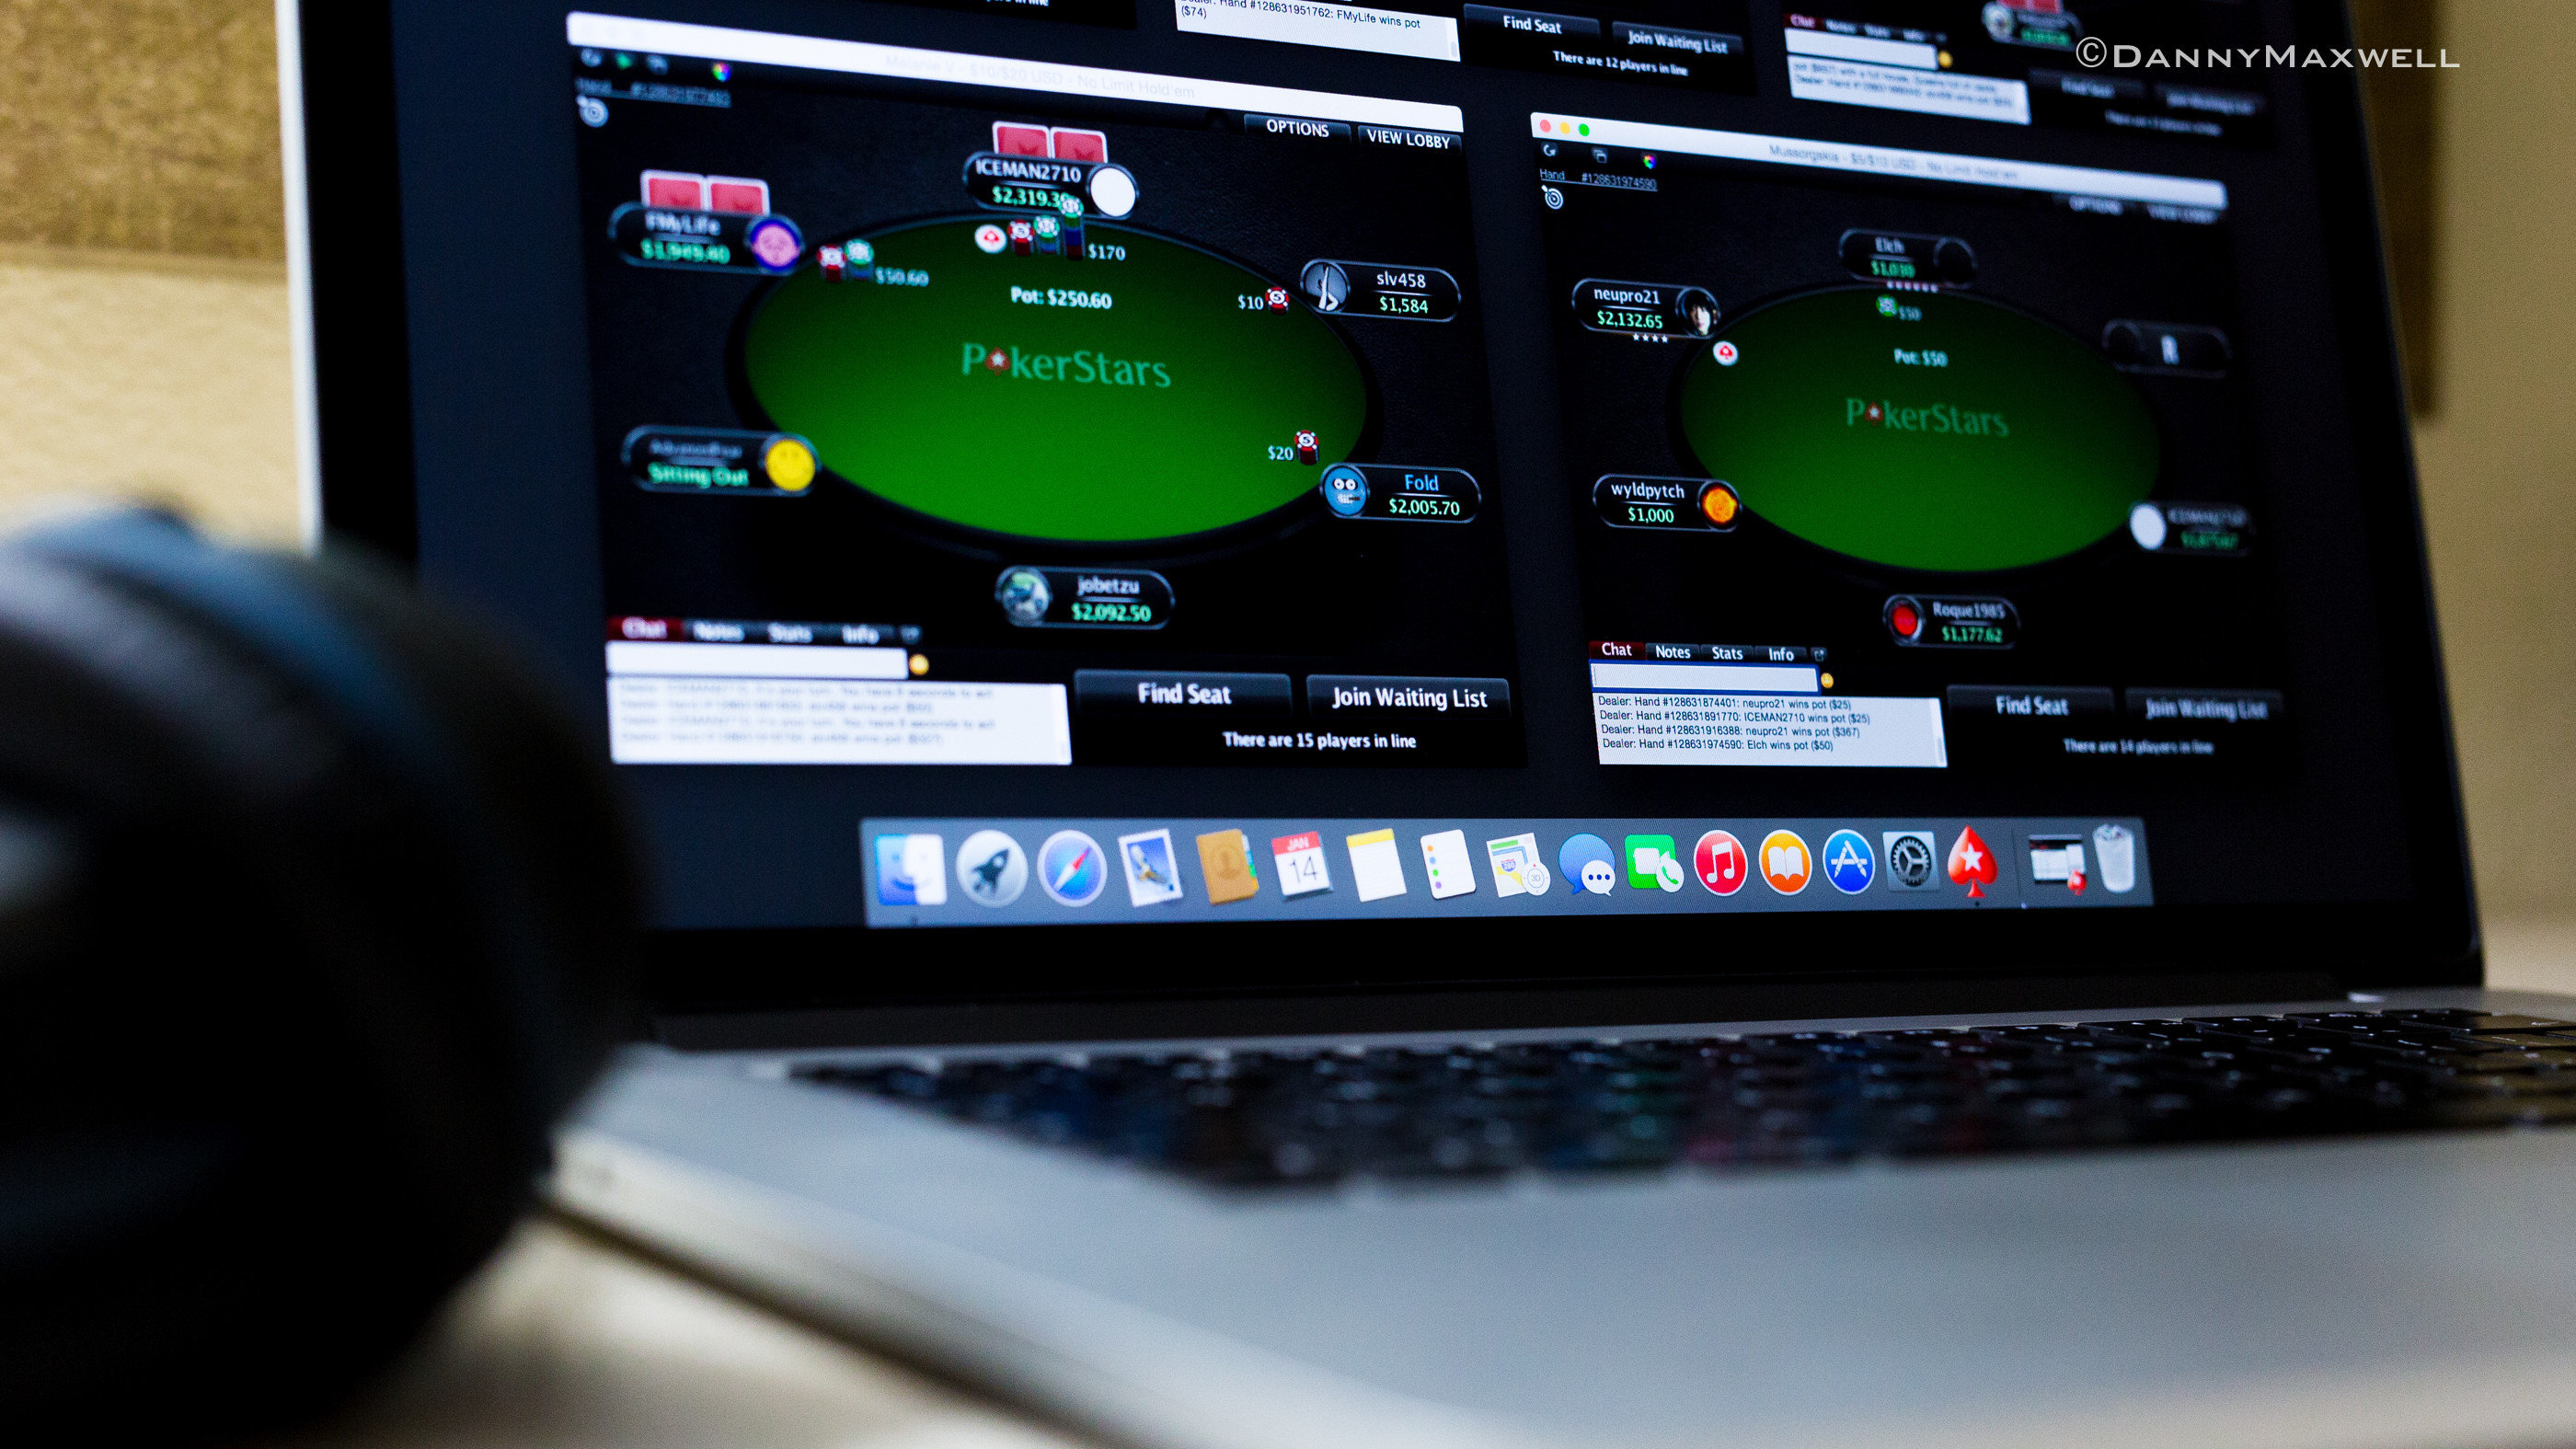 Is It Illegal To Play Online Poker In The US?